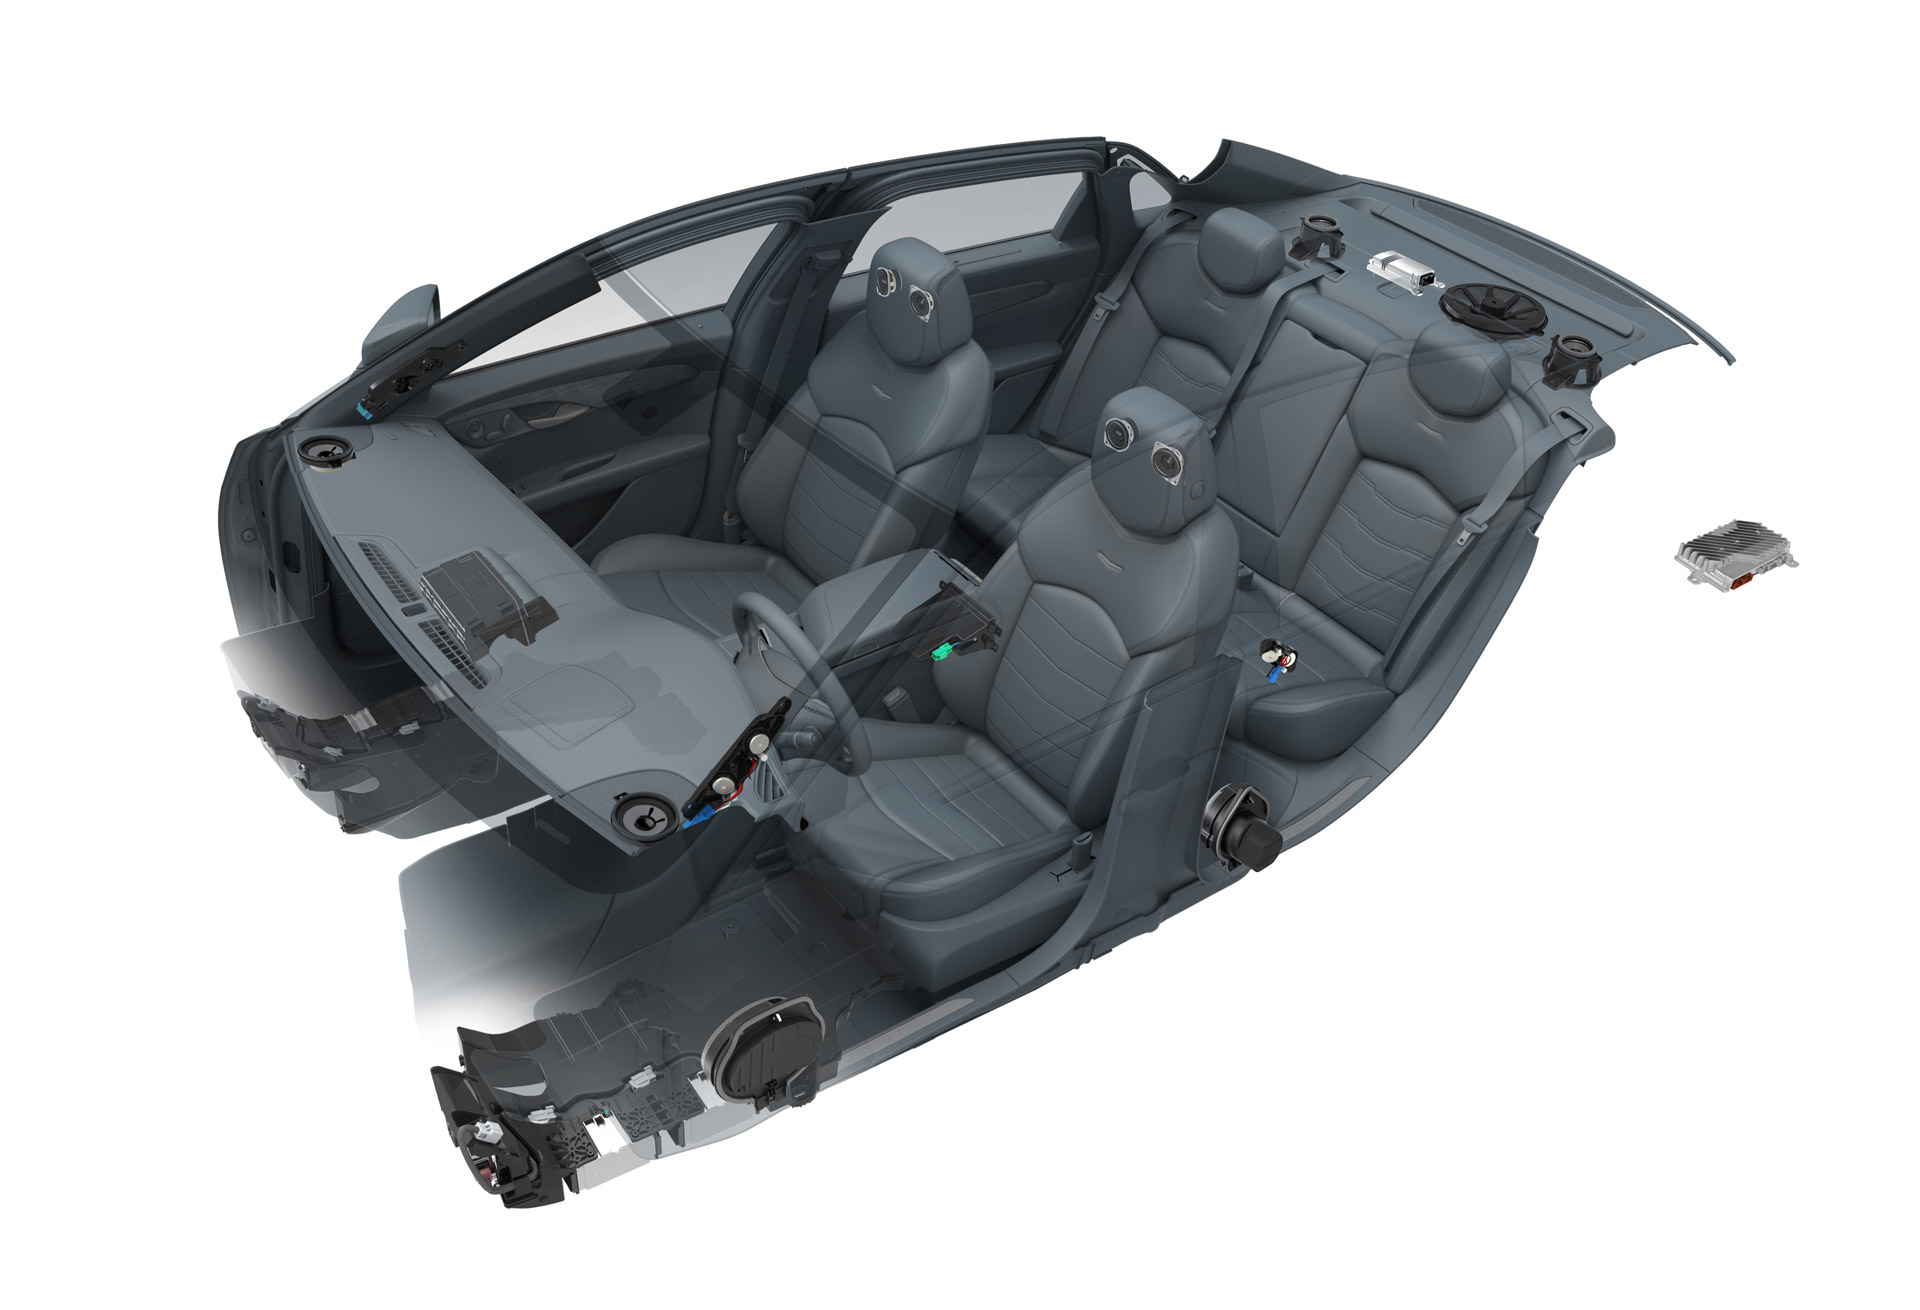 Bose Car Speakers >> First Look At 2016 Cadillac CT6 Interior, Bose Panaray Sound System